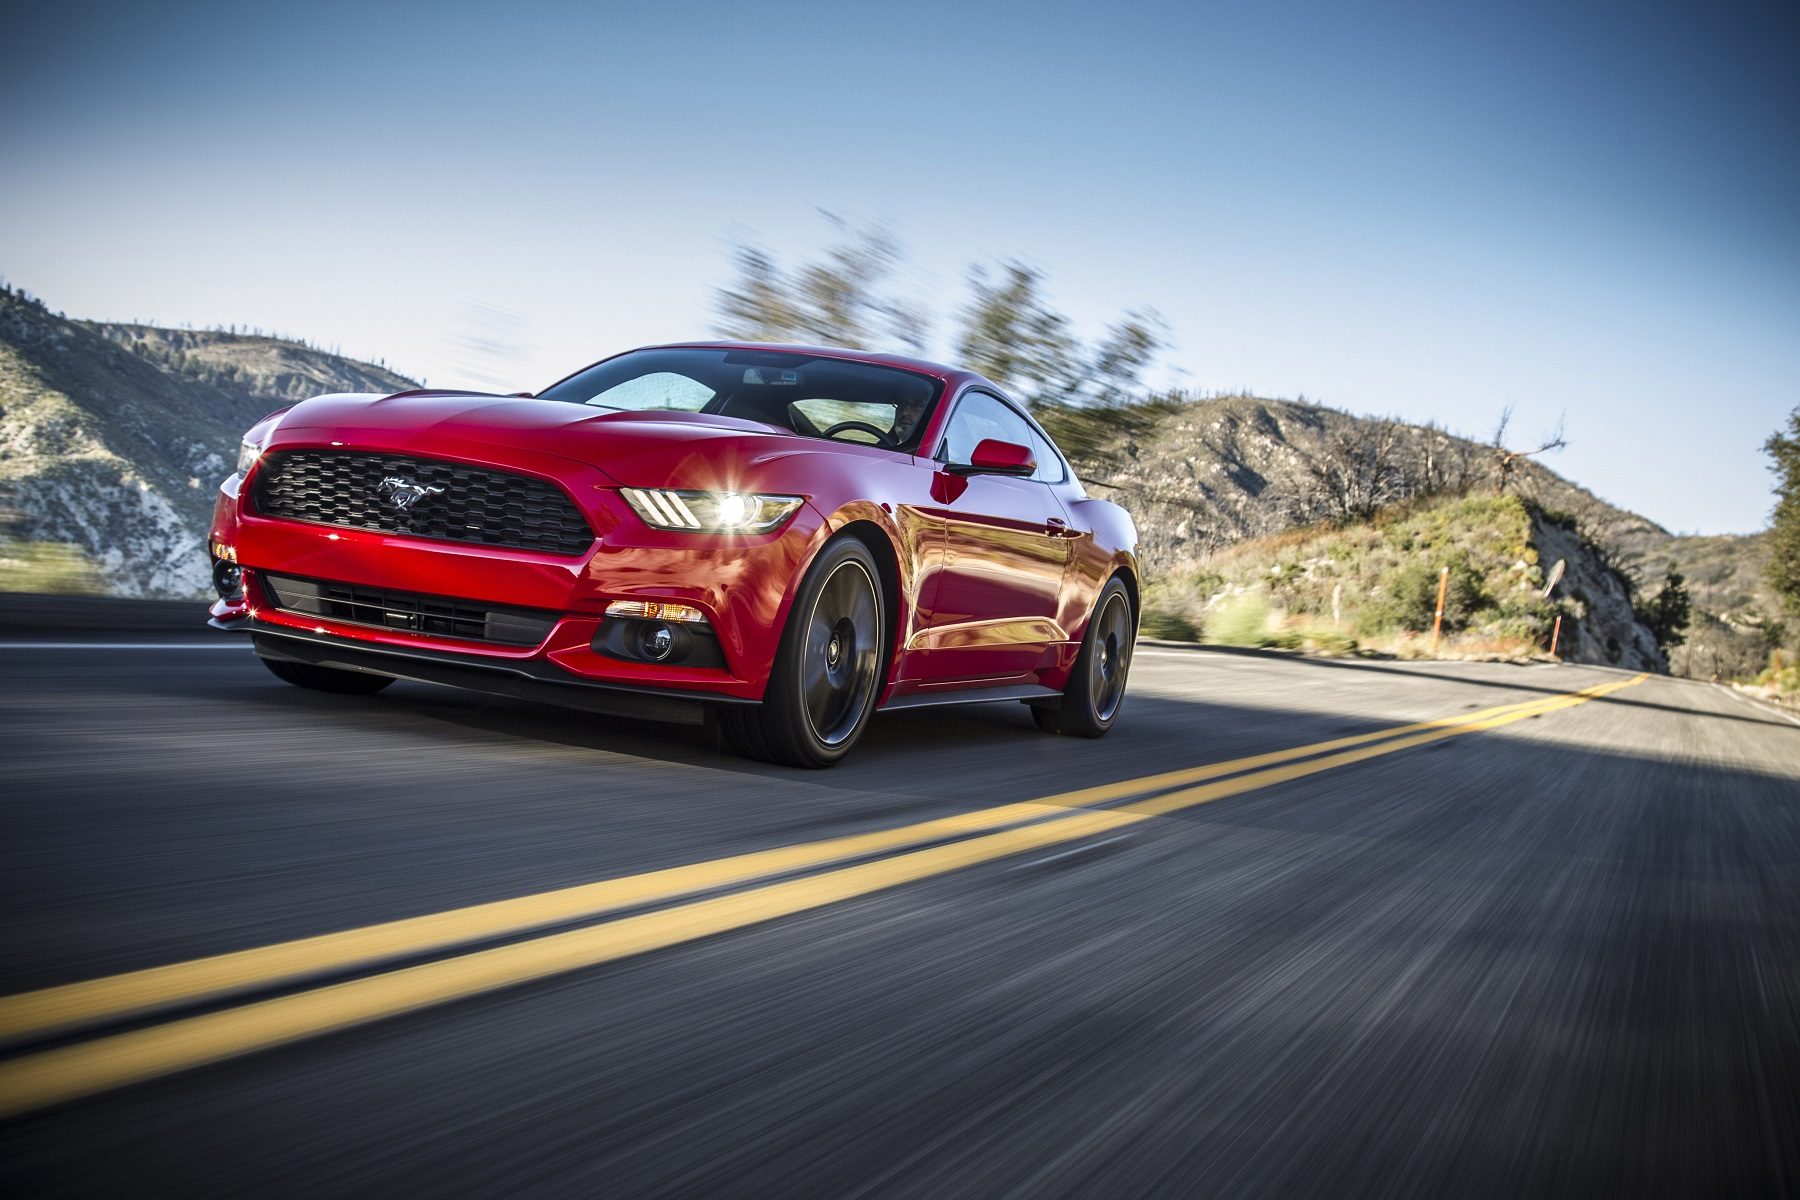 Manufacturer photo: The clean-sheet design of the 2015 Mustang fastback and convertible evokes the essential character of the brand, retaining key design elements -- including the long sculpted hood and short rear deck -- with contemporary execution